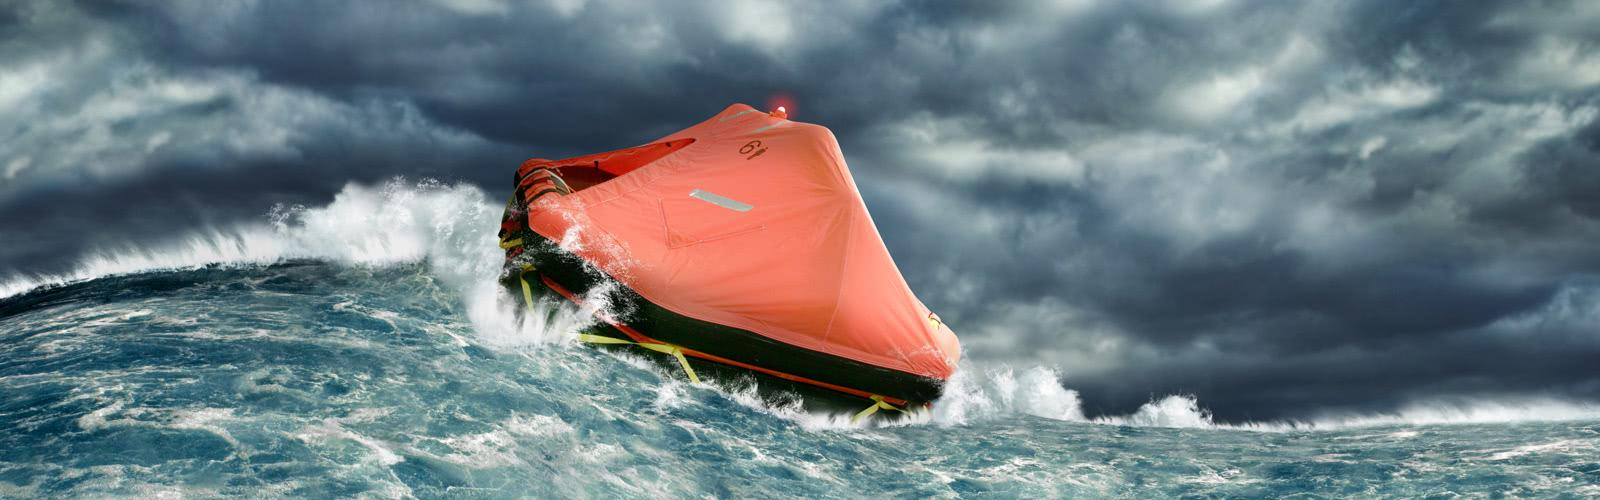 Life rafts for sports boats and sailing yachts